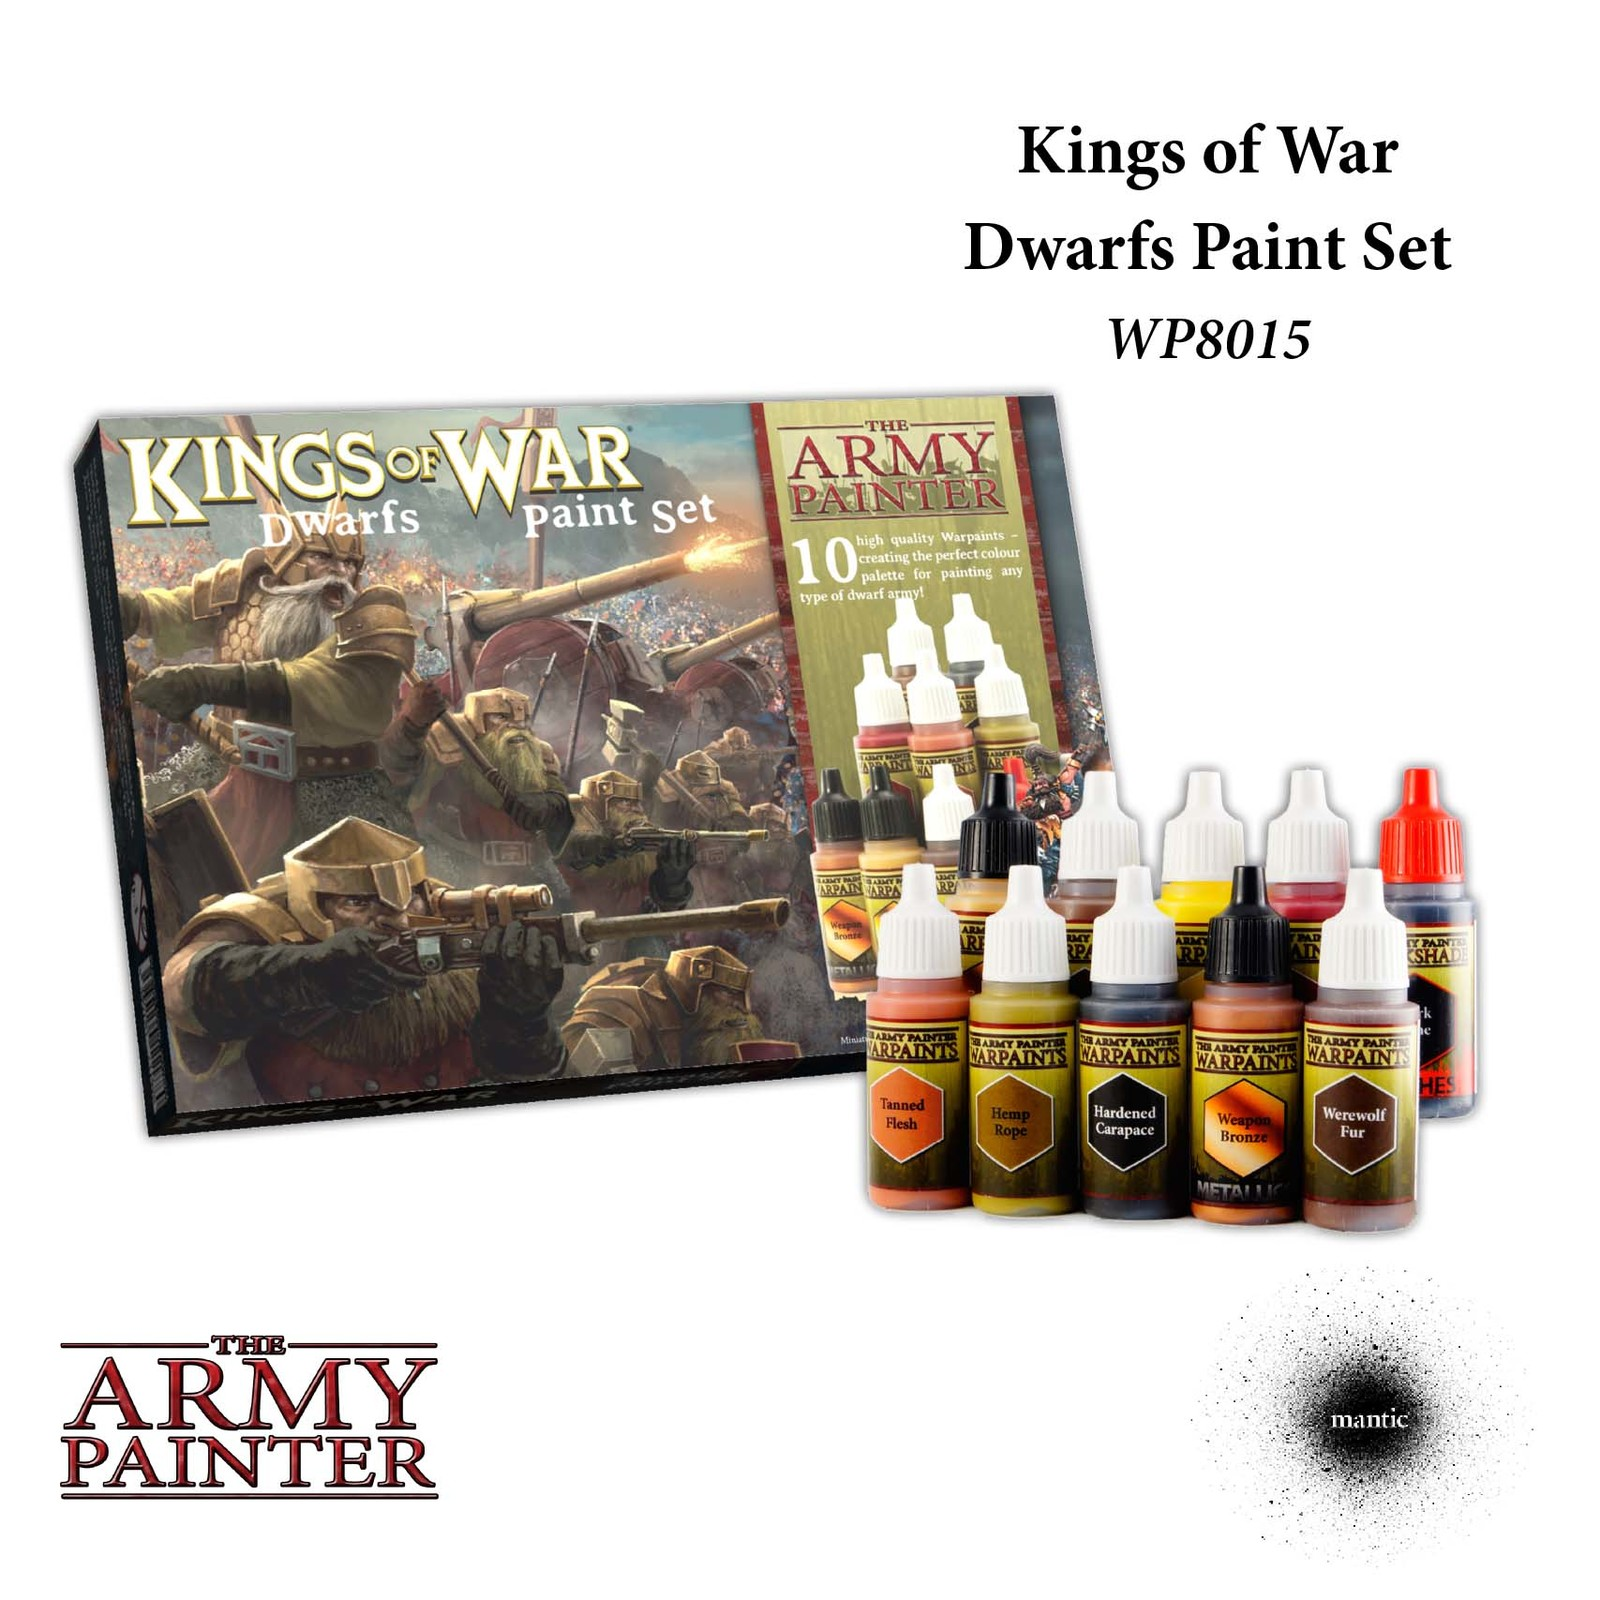 Army Painter Warpaints Kings of War Dwarfs Paint Set image